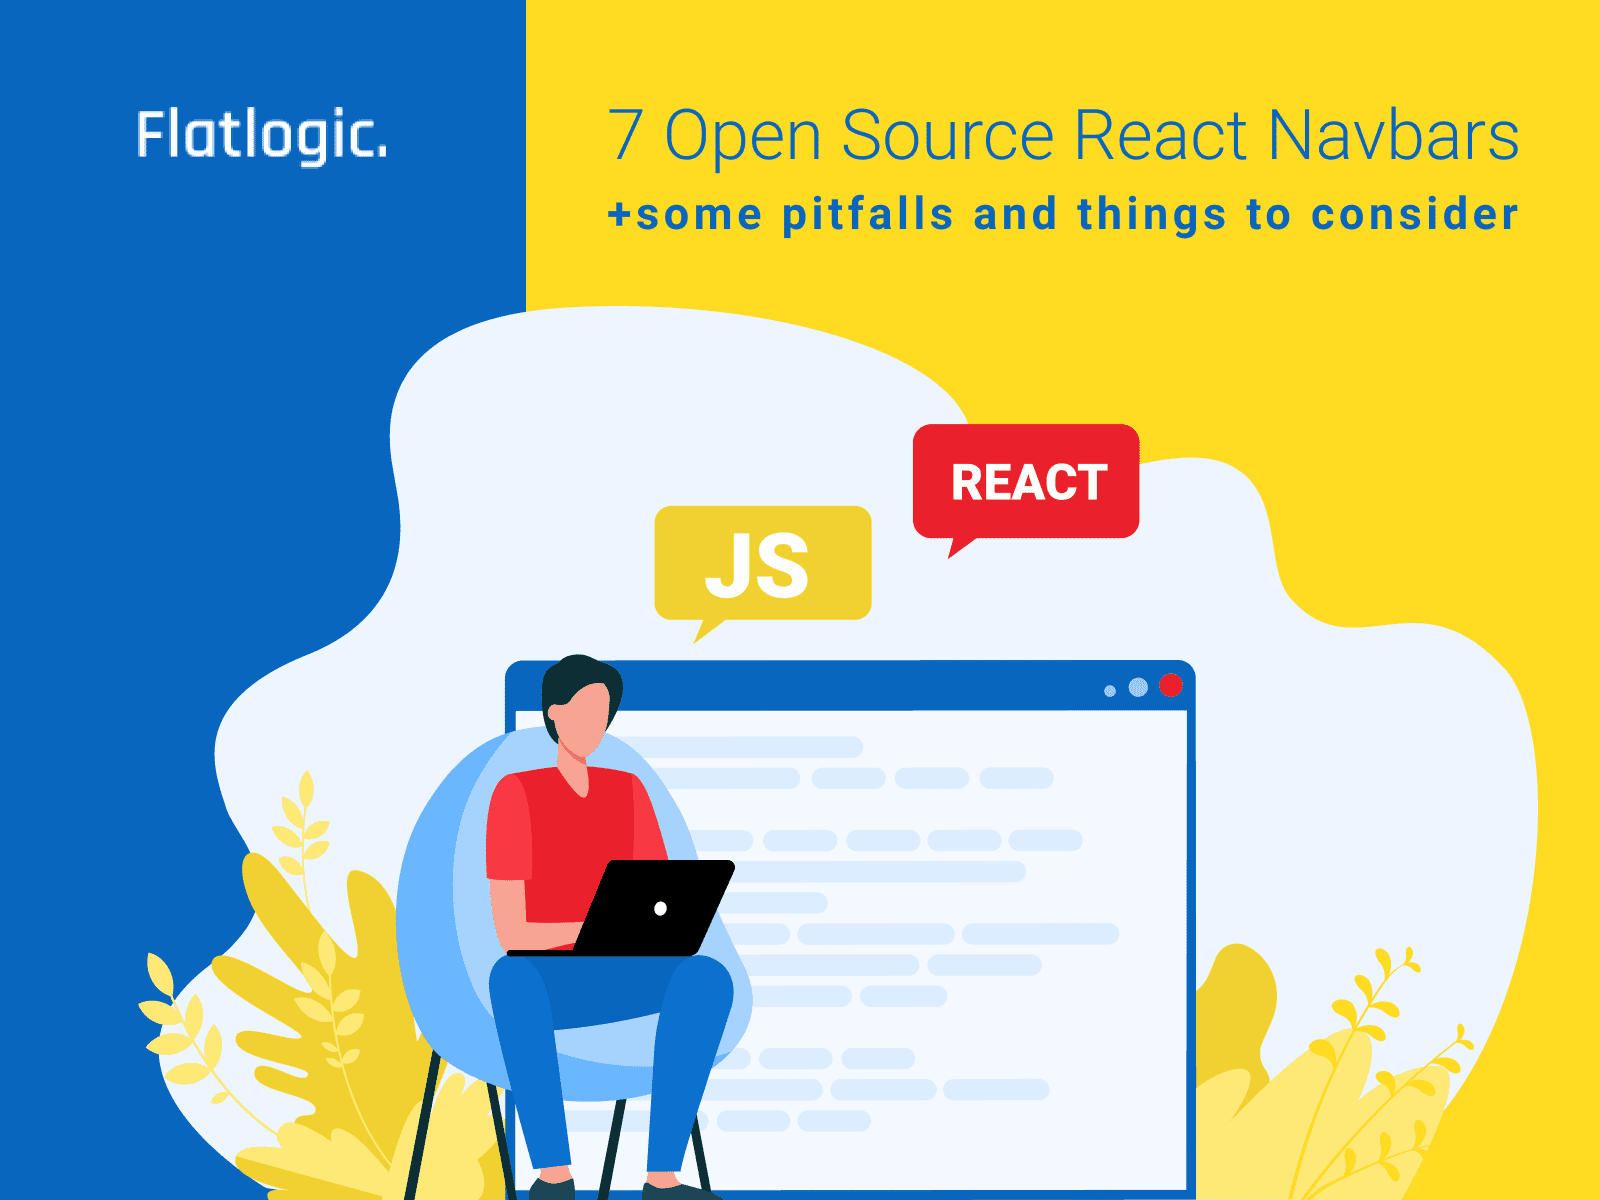 7 Open Source React Navbars + Some Pitfalls and Things to Consider